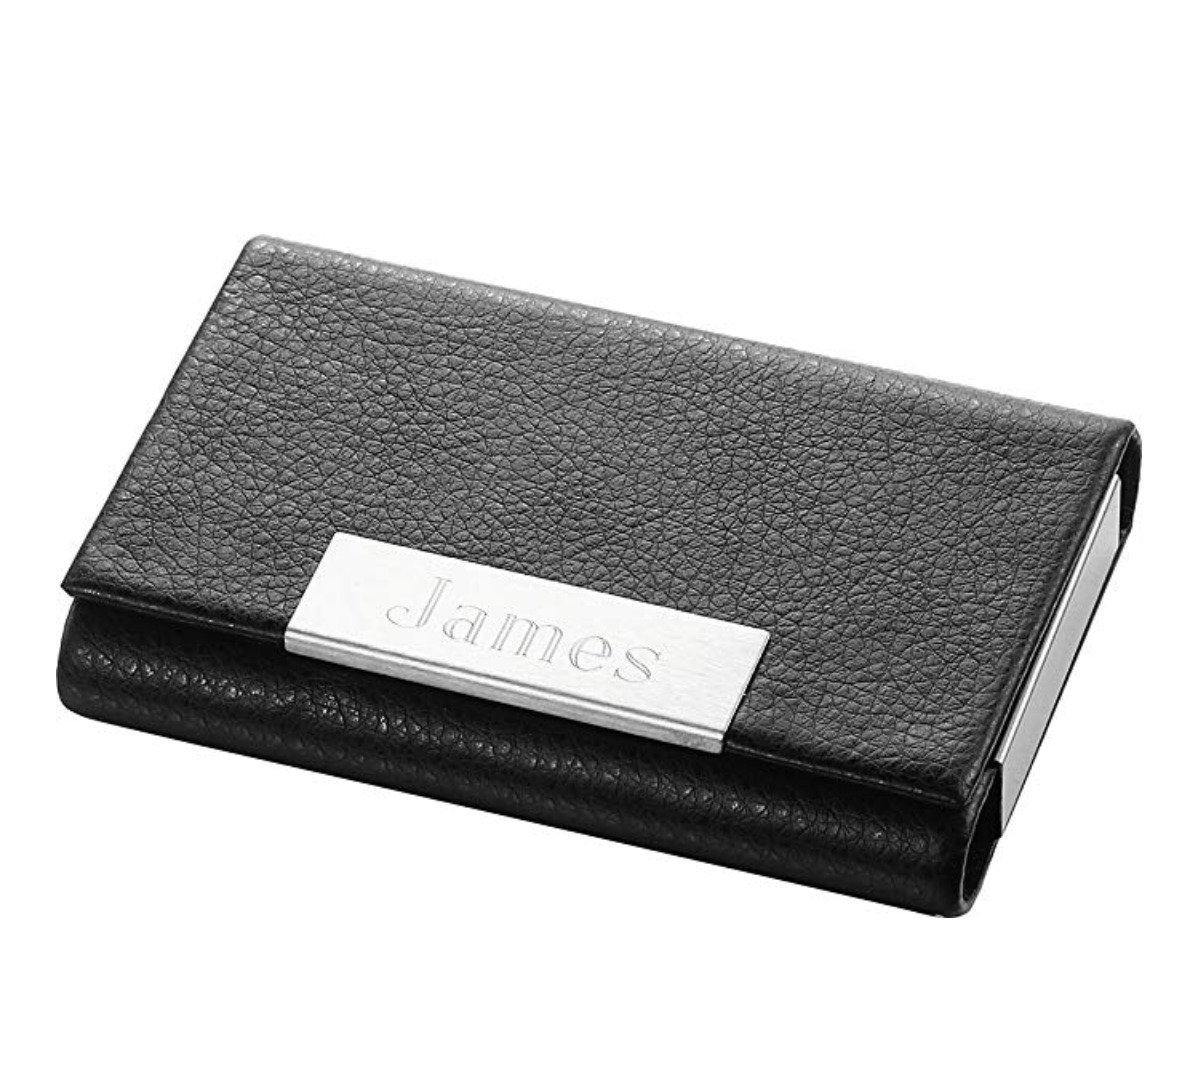 personalized-gifts-for-men-card-holder